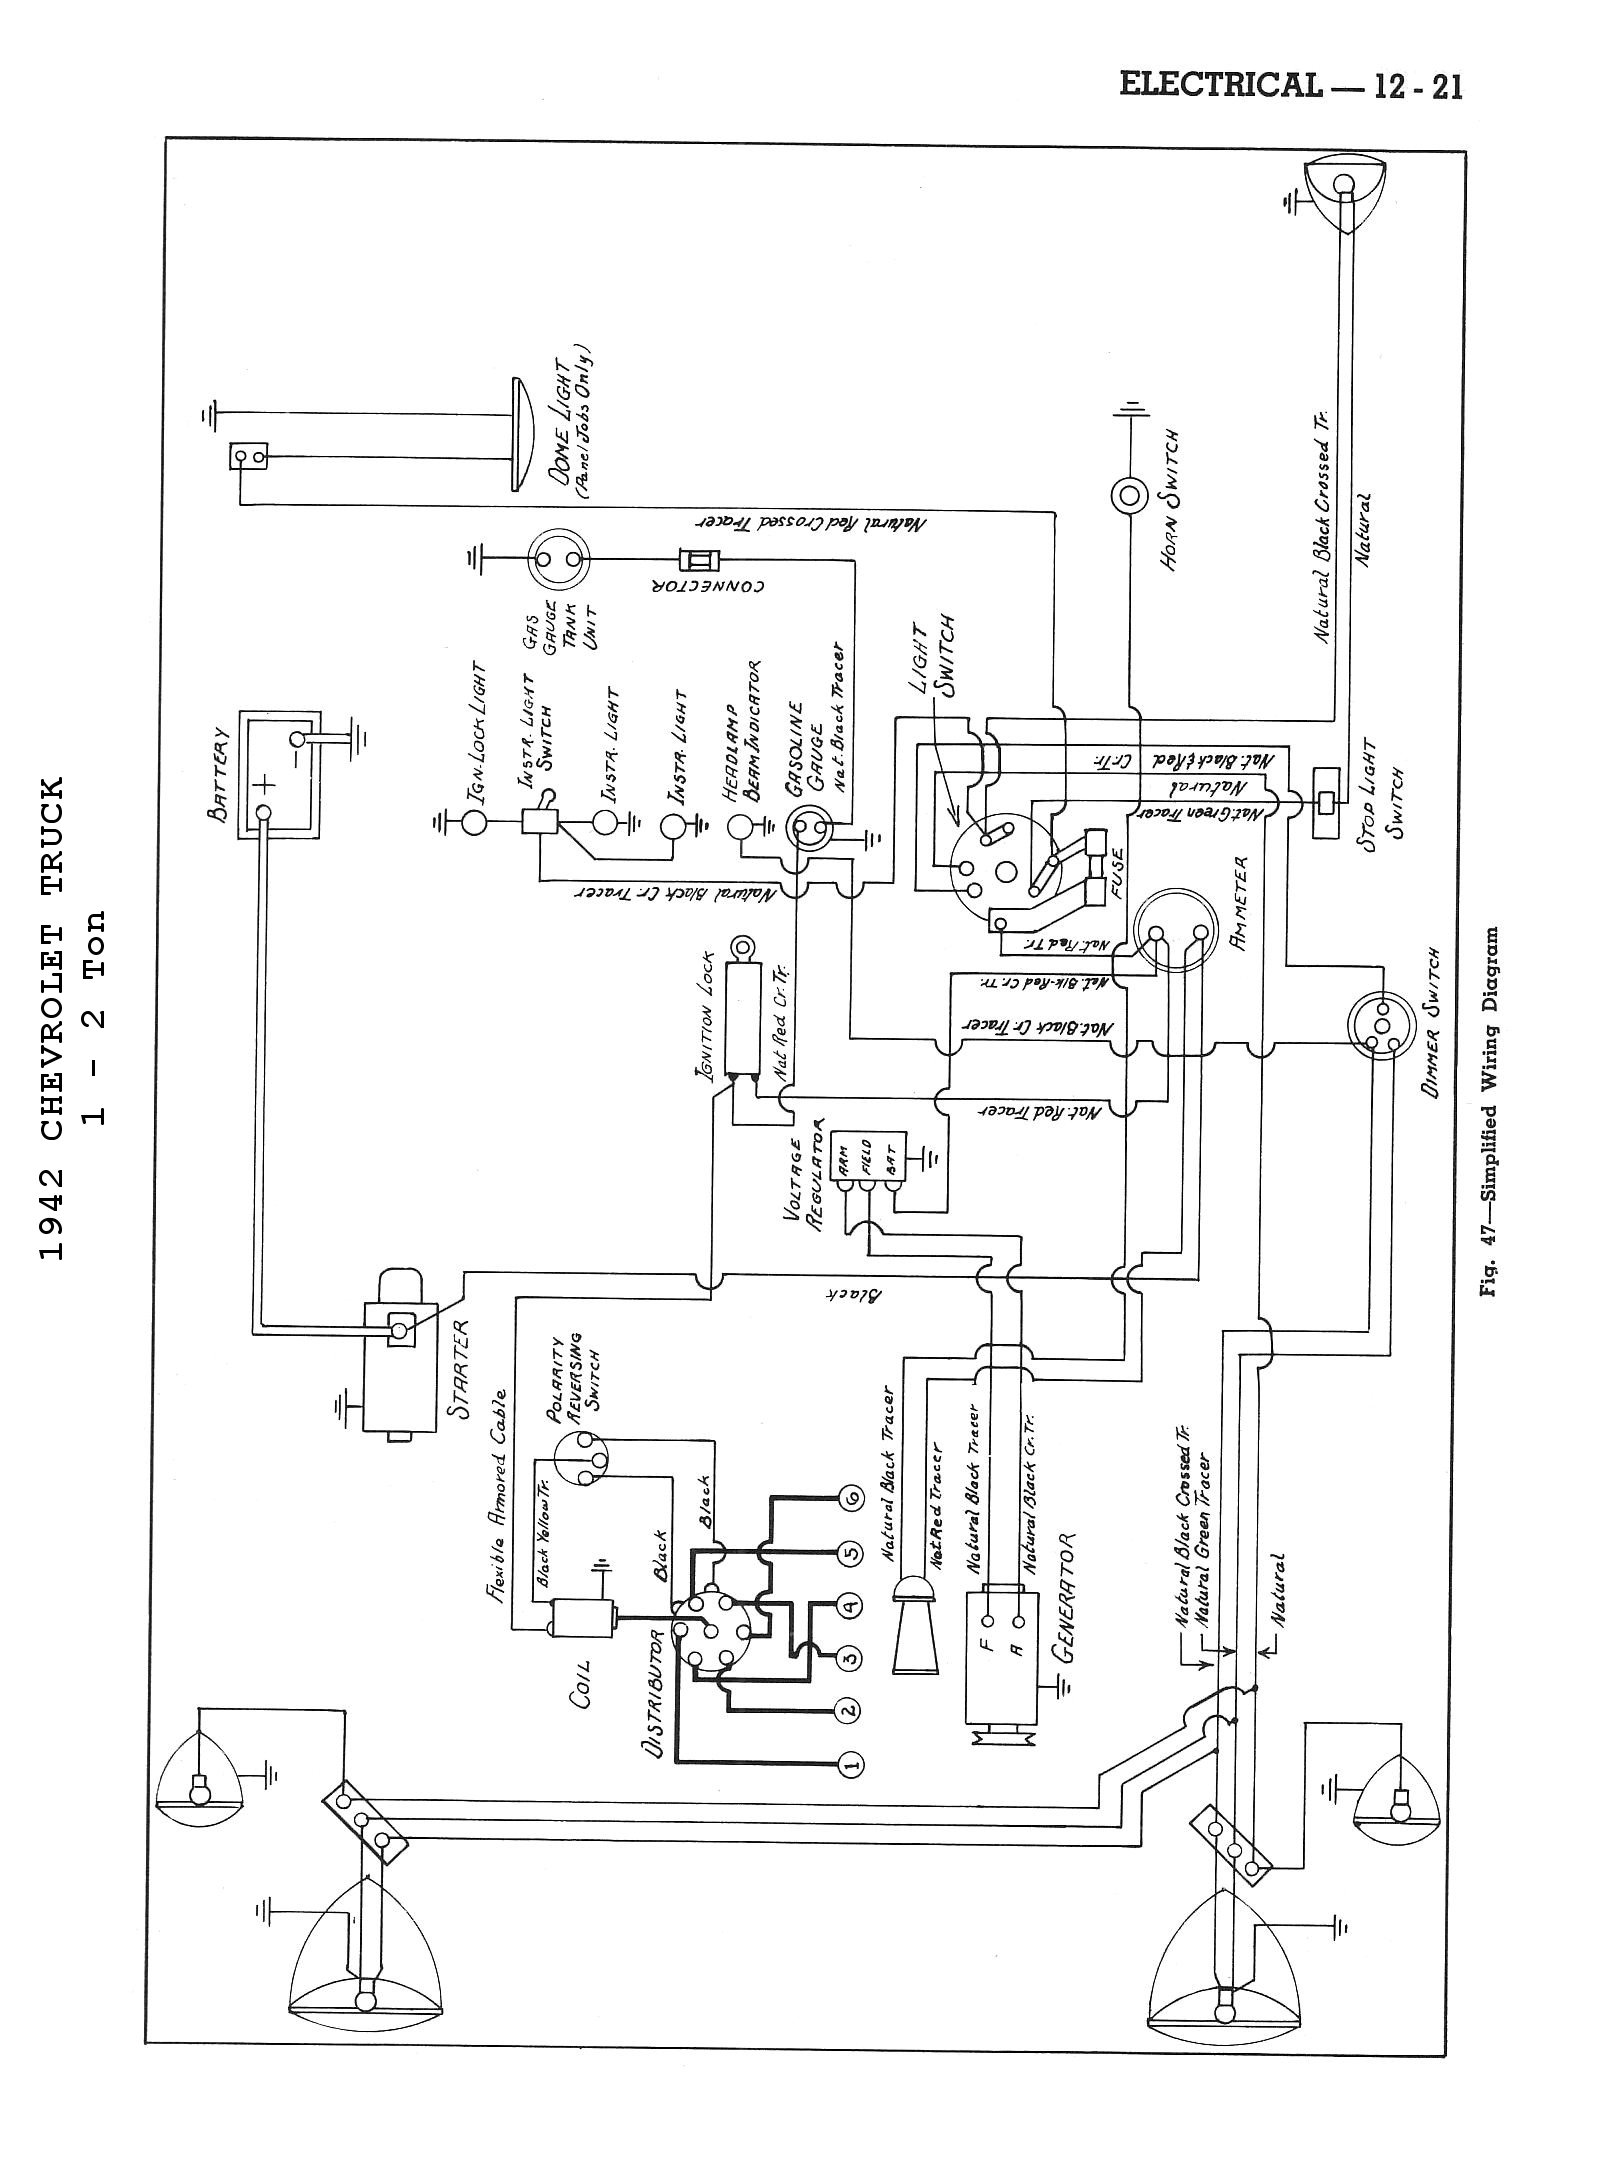 Lcd Wiring Diagram likewise Index14 together with How To Make Car Battery Charger L32739 in addition 3v91v Fussing John Deere 318 Tractor Number as well Automotive Battery Charger Wiring Diagram. on schumacher battery charger circuit diagram